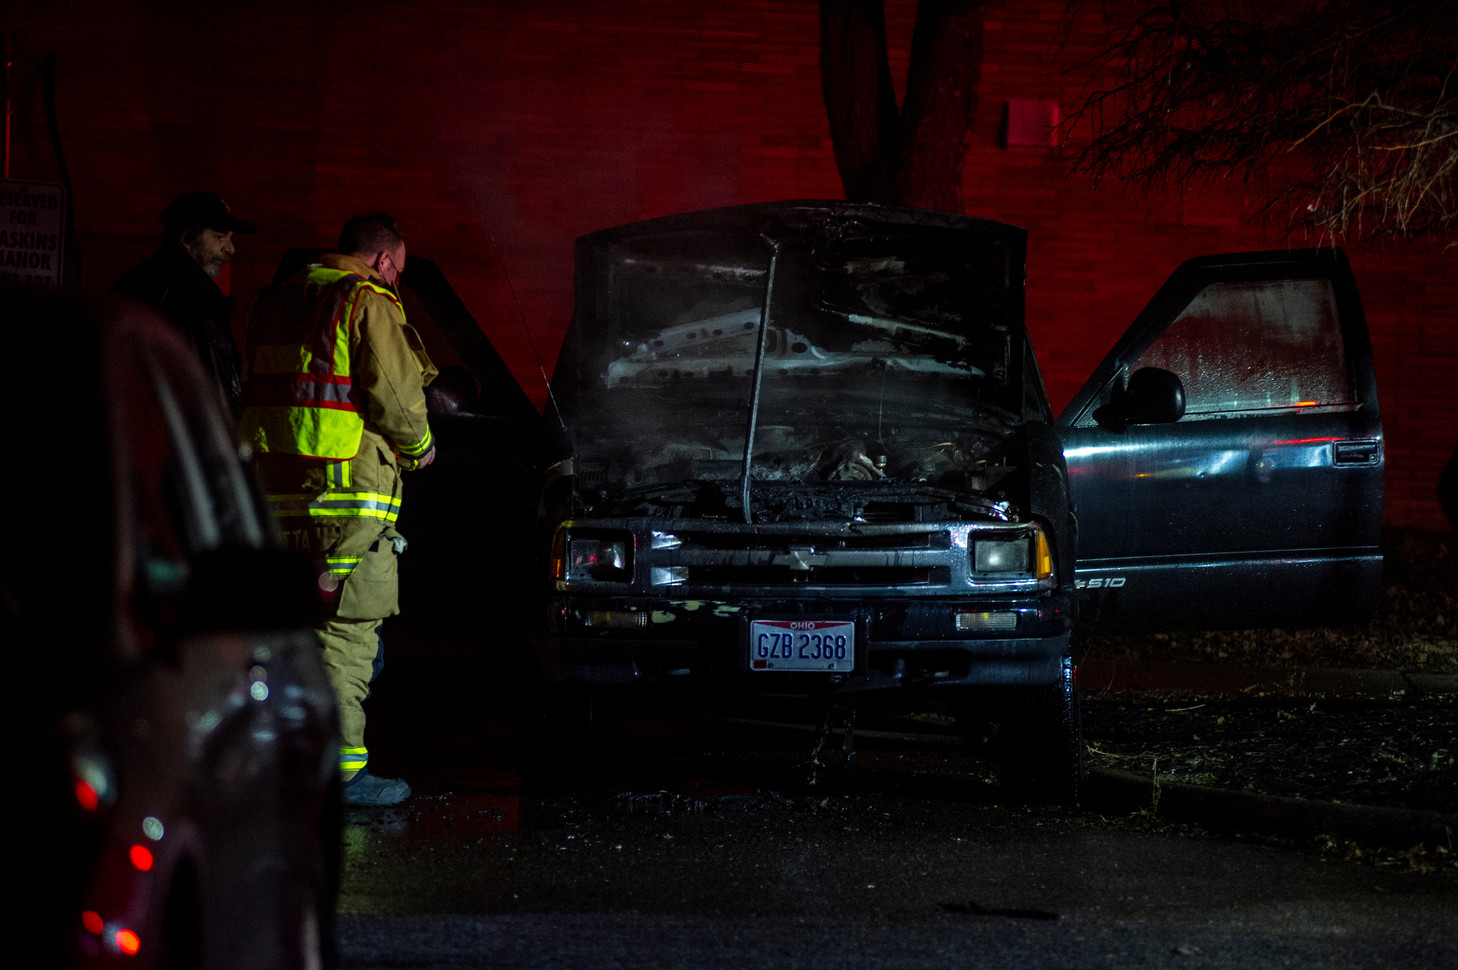 Firefighters work to put out a car fire during a county wide power outage in Athens, Ohio, on Friday, Jan. 22, 2021.